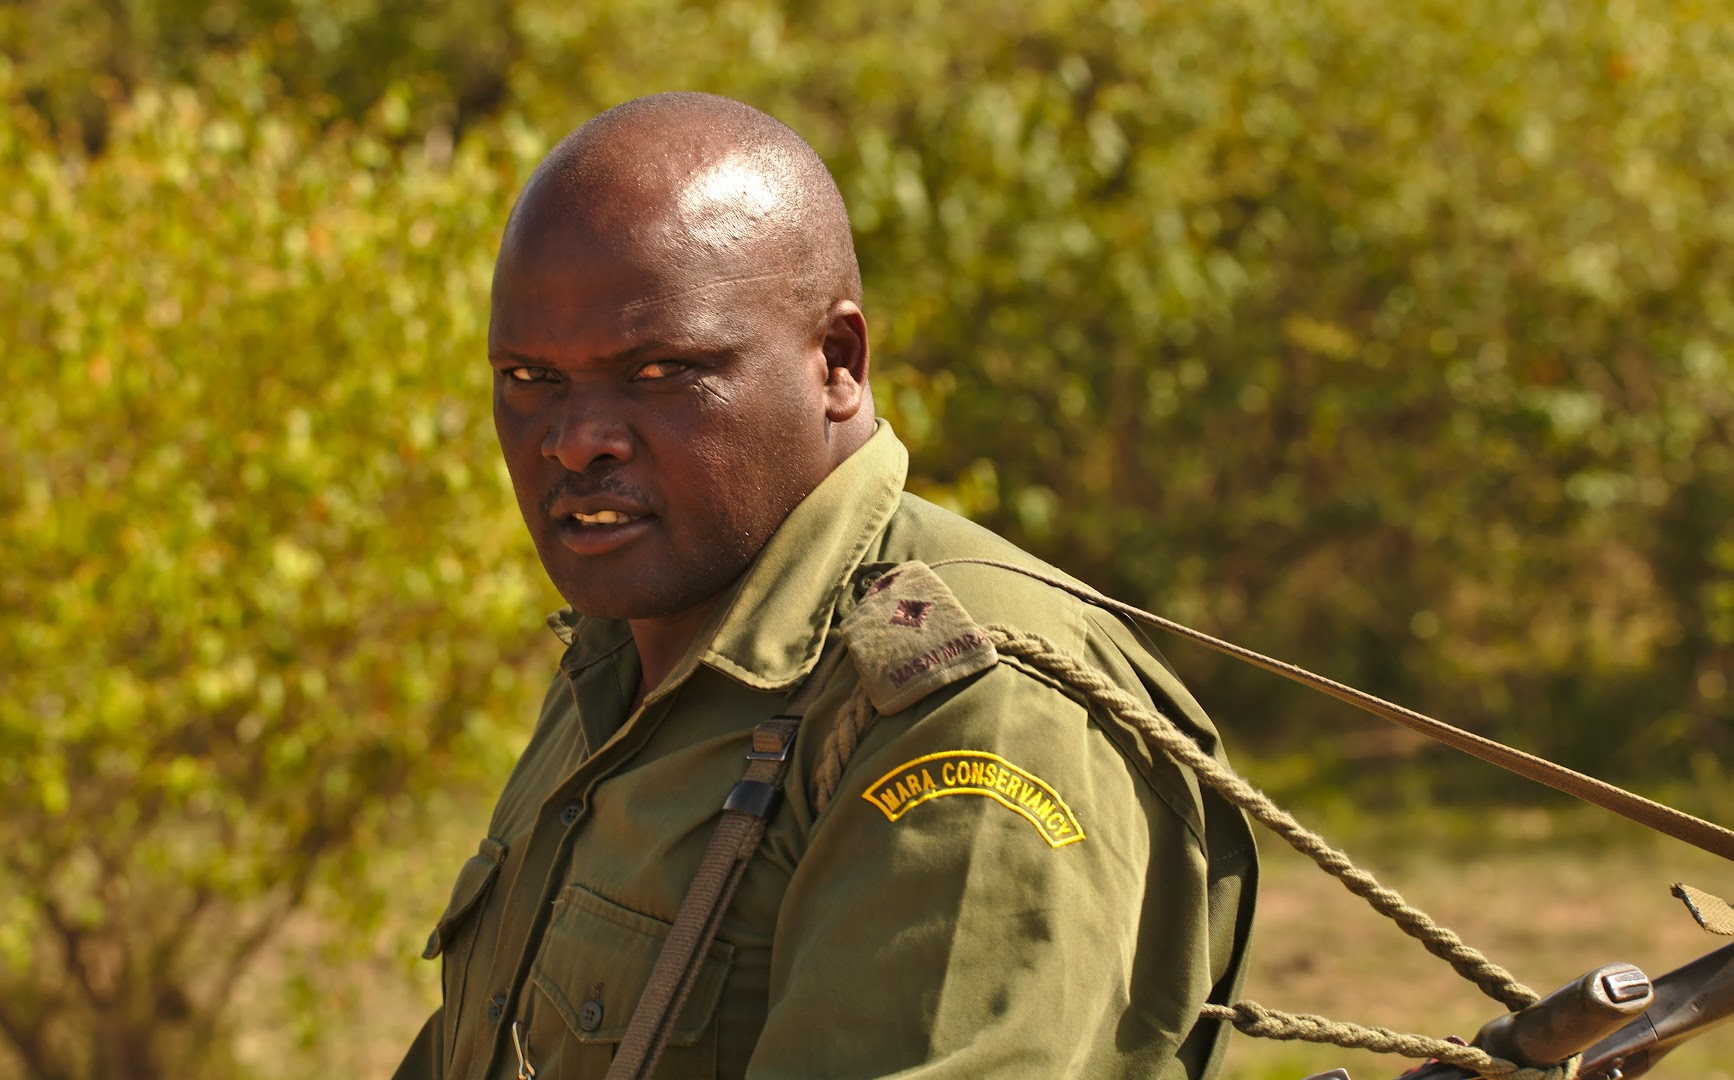 Rangers sometimes need to fight with the poachers